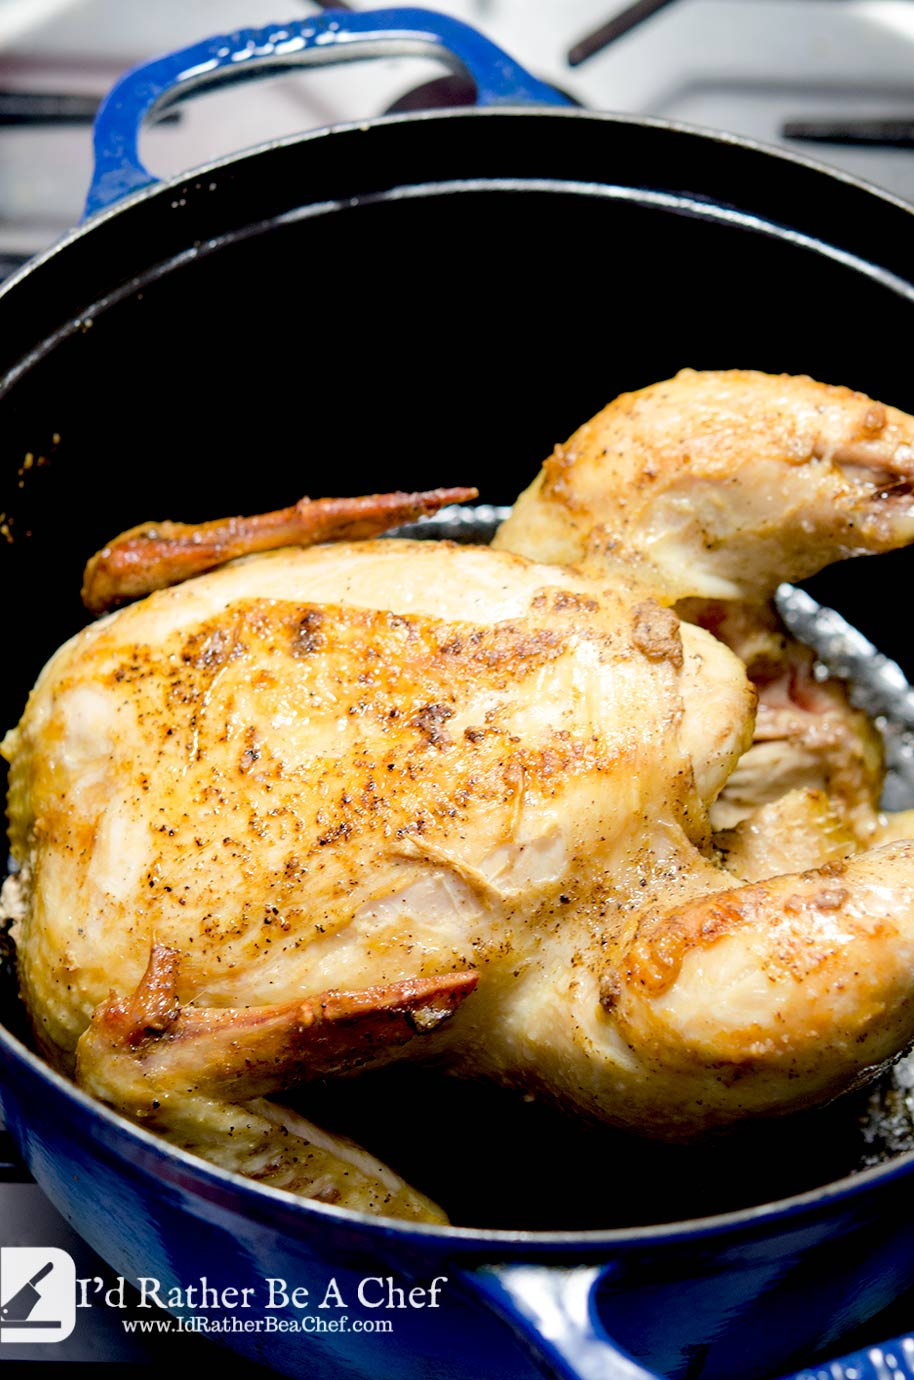 The perfect roast chicken doesn't need to be trussed or fussed with. All you need to know is your chicken will have crispy skin, tender meat and deep flavor.